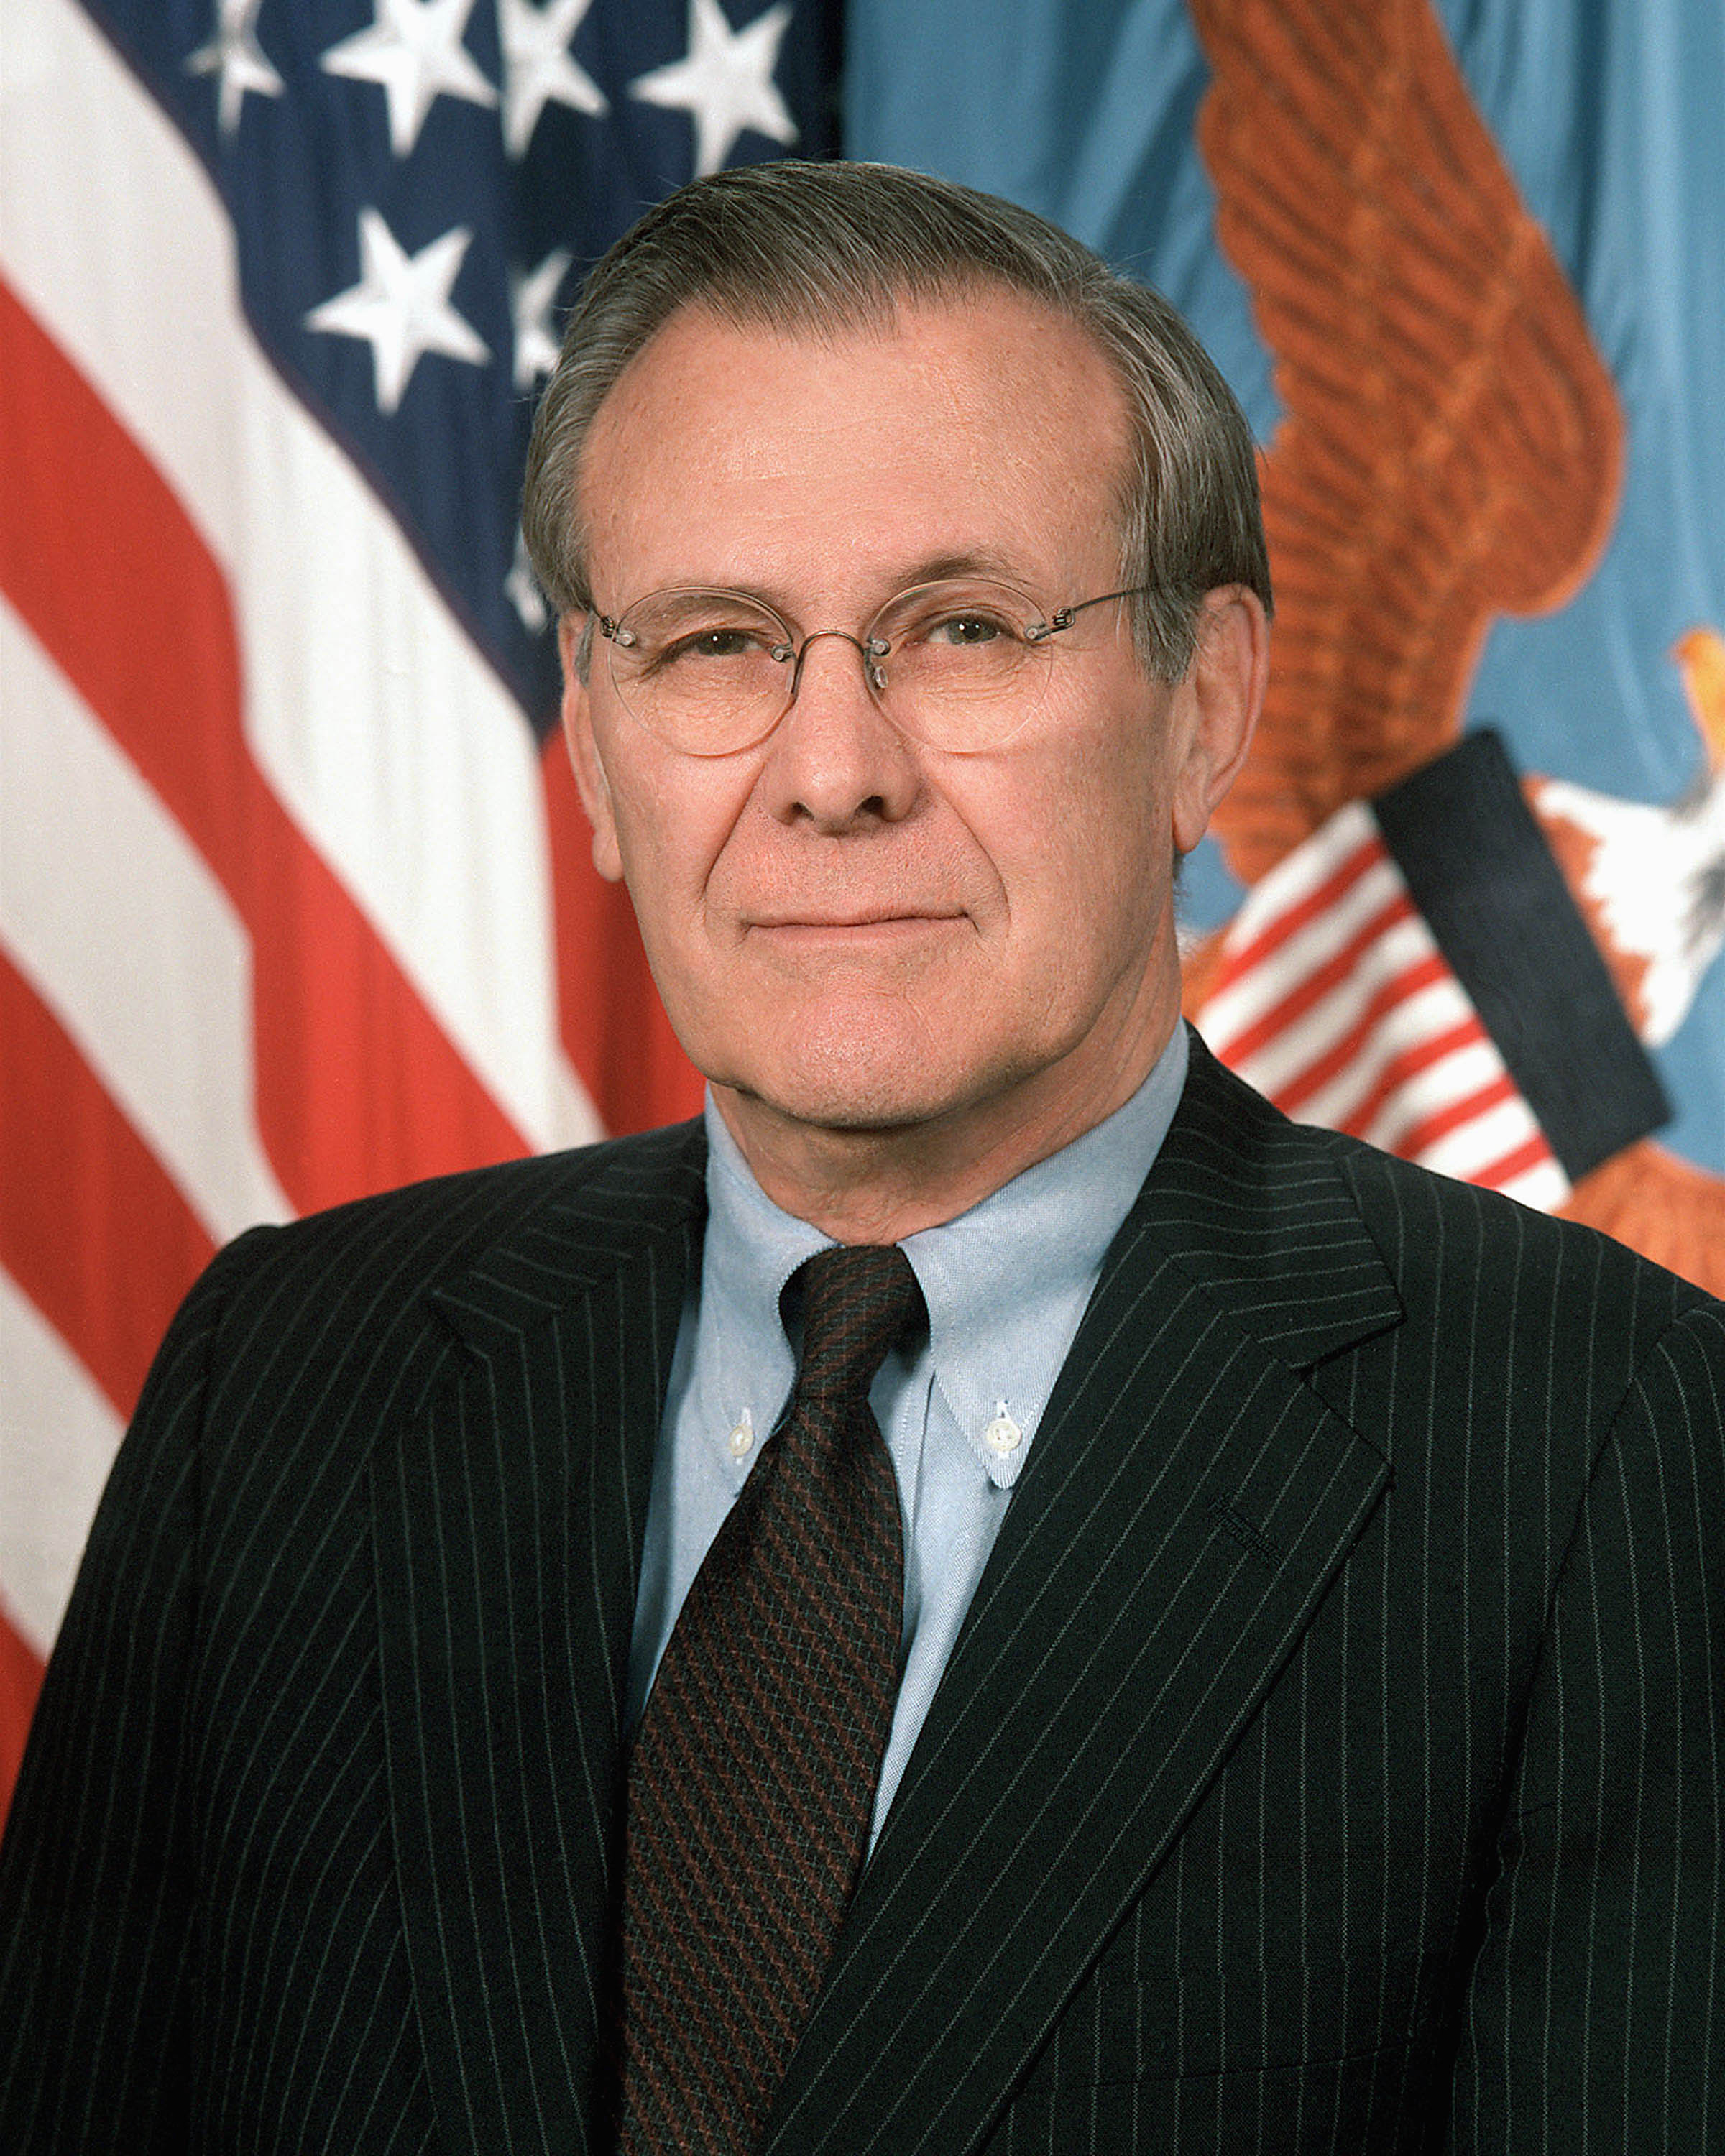 https://upload.wikimedia.org/wikipedia/commons/1/17/Rumsfeld1.jpg